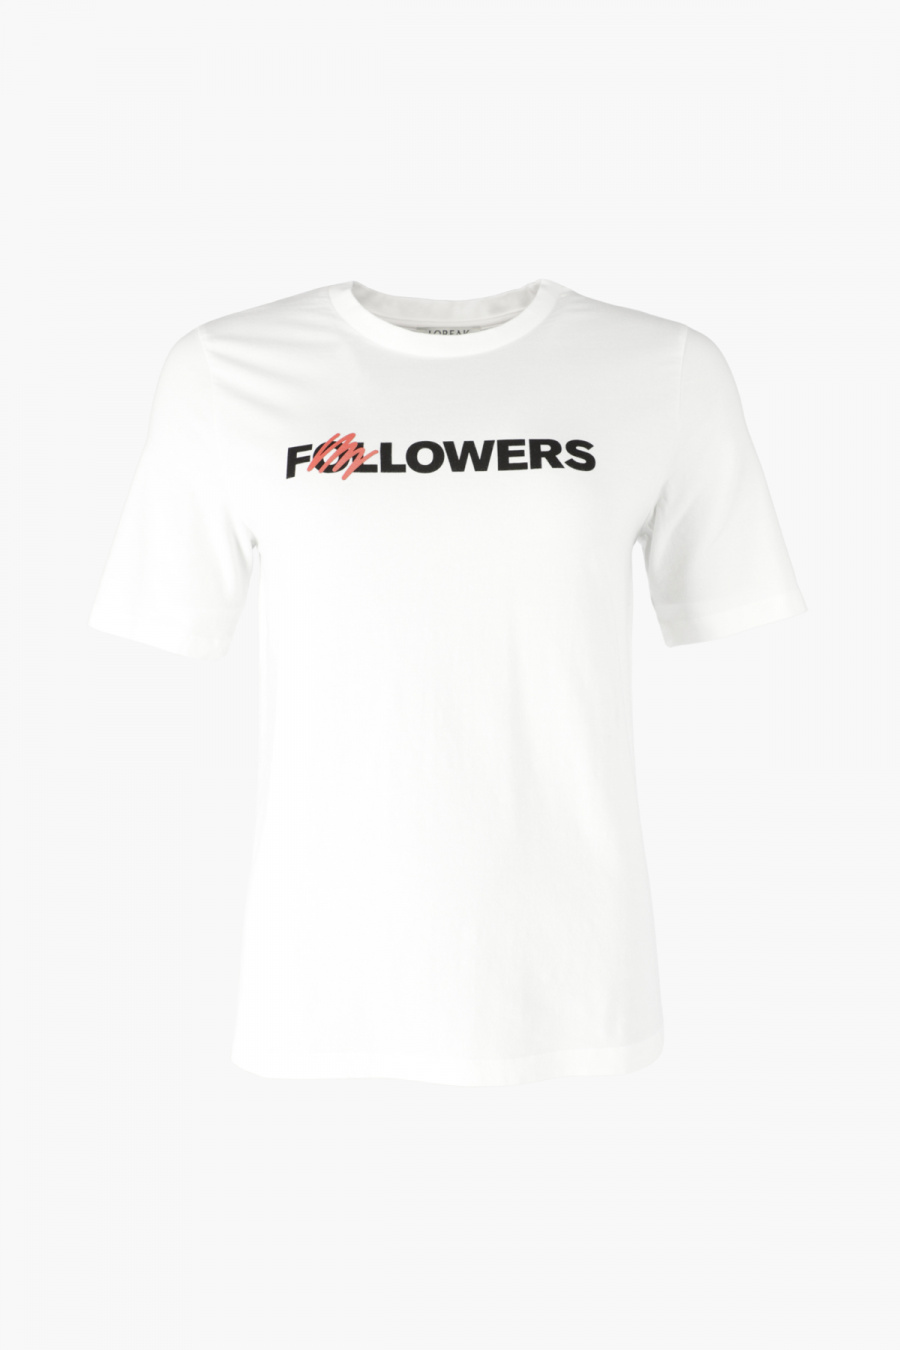 CAMISETA FOLLOWERS W WHITE